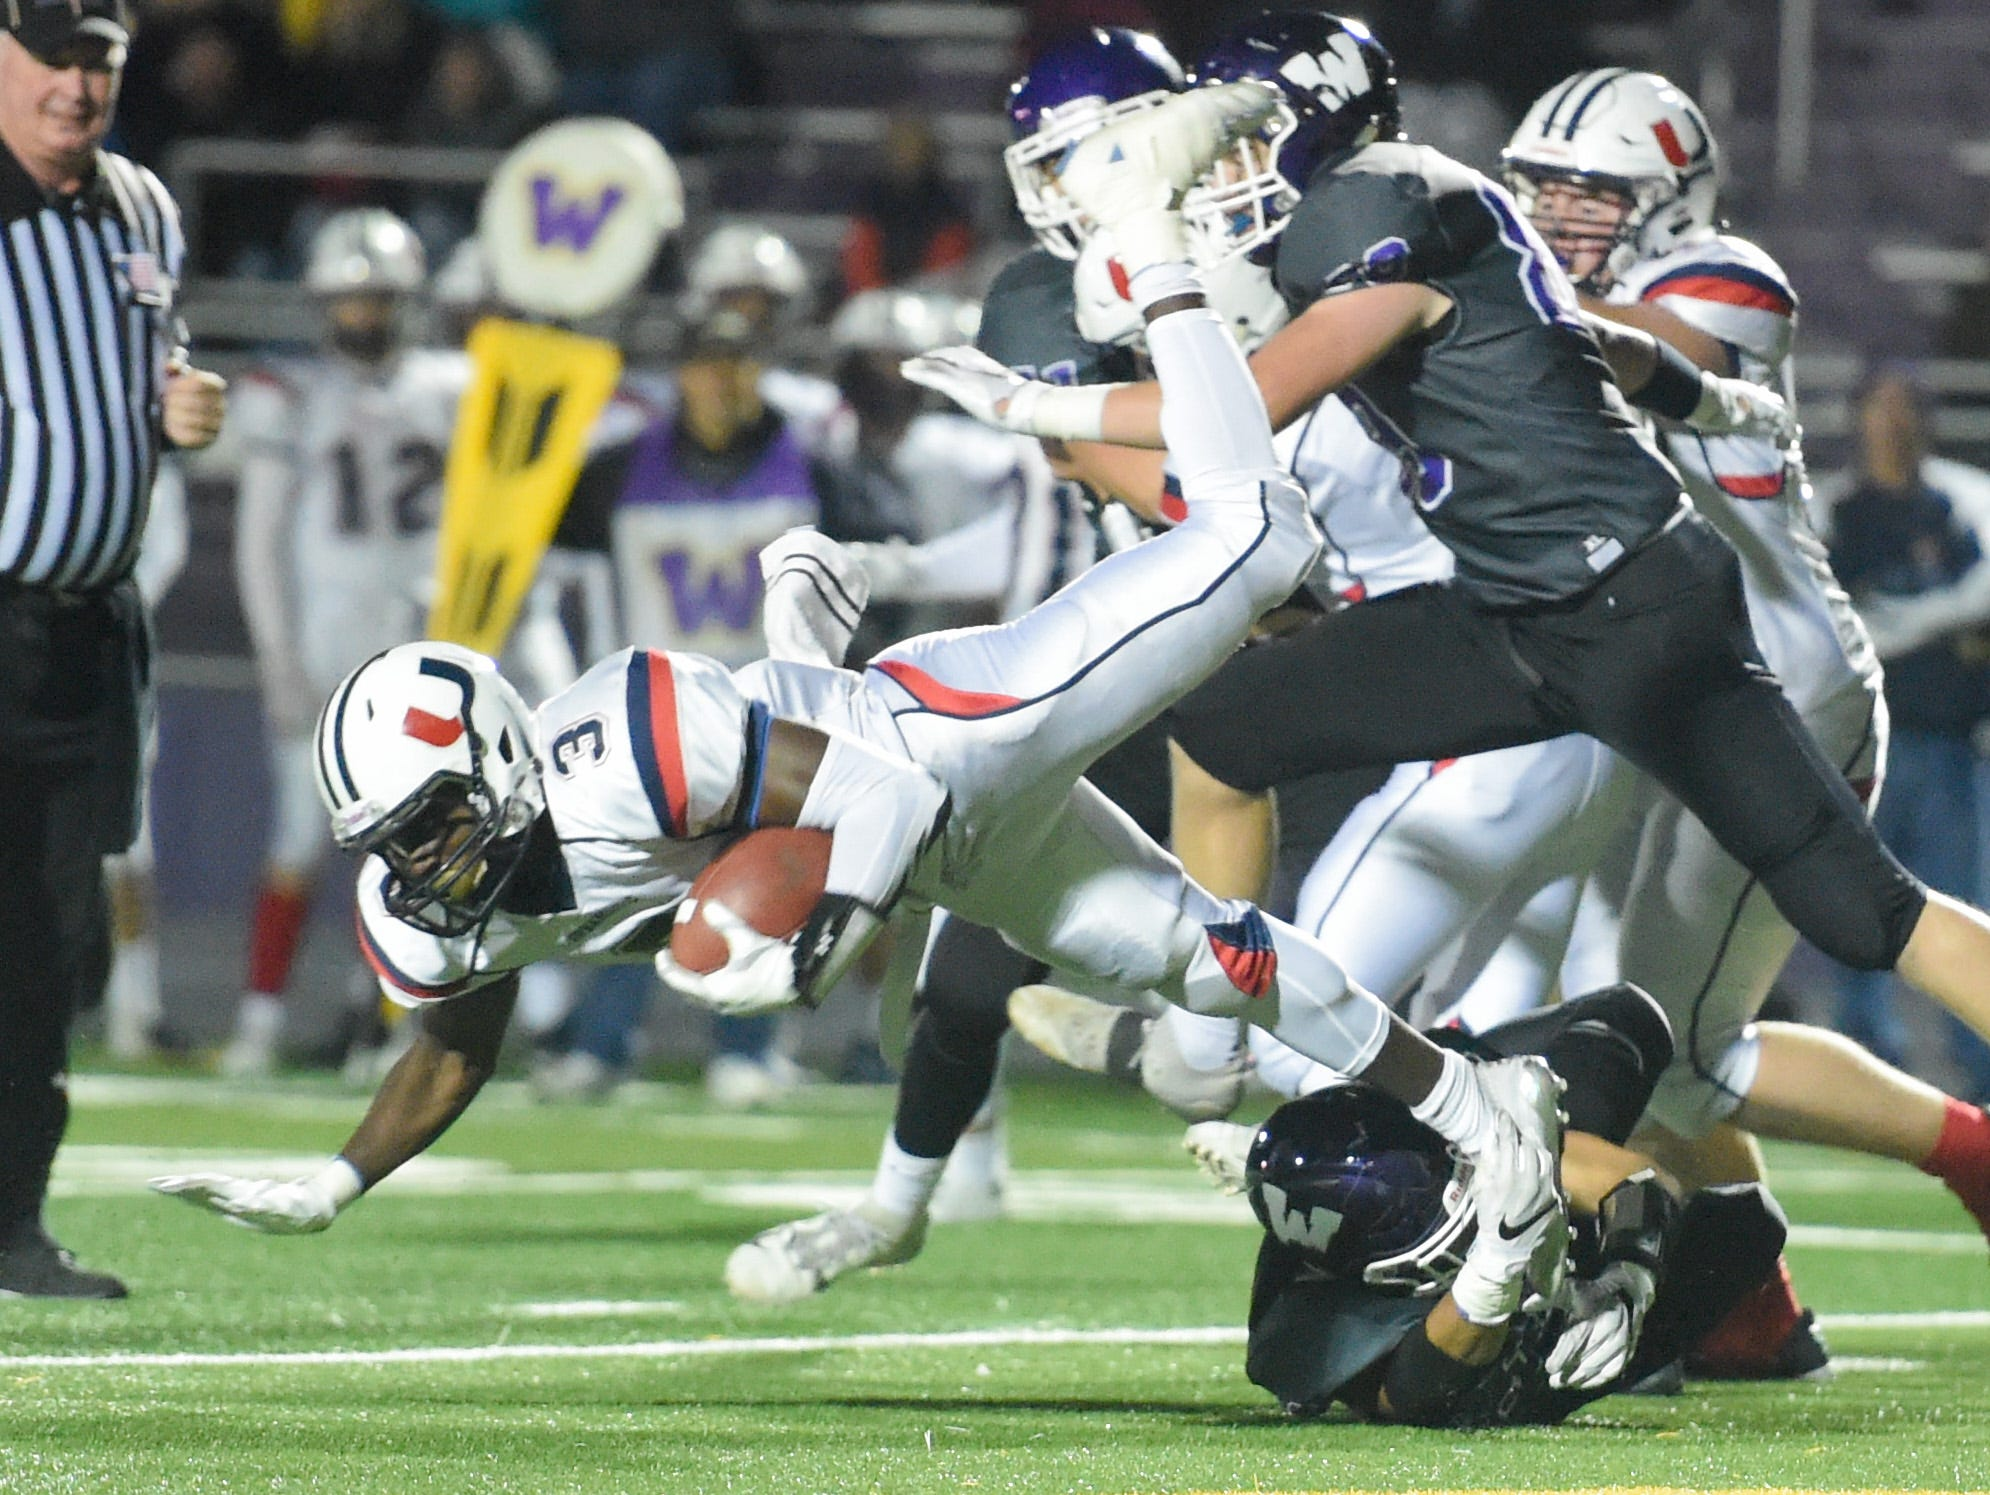 Urbandale's Harrison Waylee (3) fights past Waukee defenders on Friday, Oct. 26, 2018 during a playoff game between the Waukee Warriors and the Urbandale J-Hawks at Waukee High School.